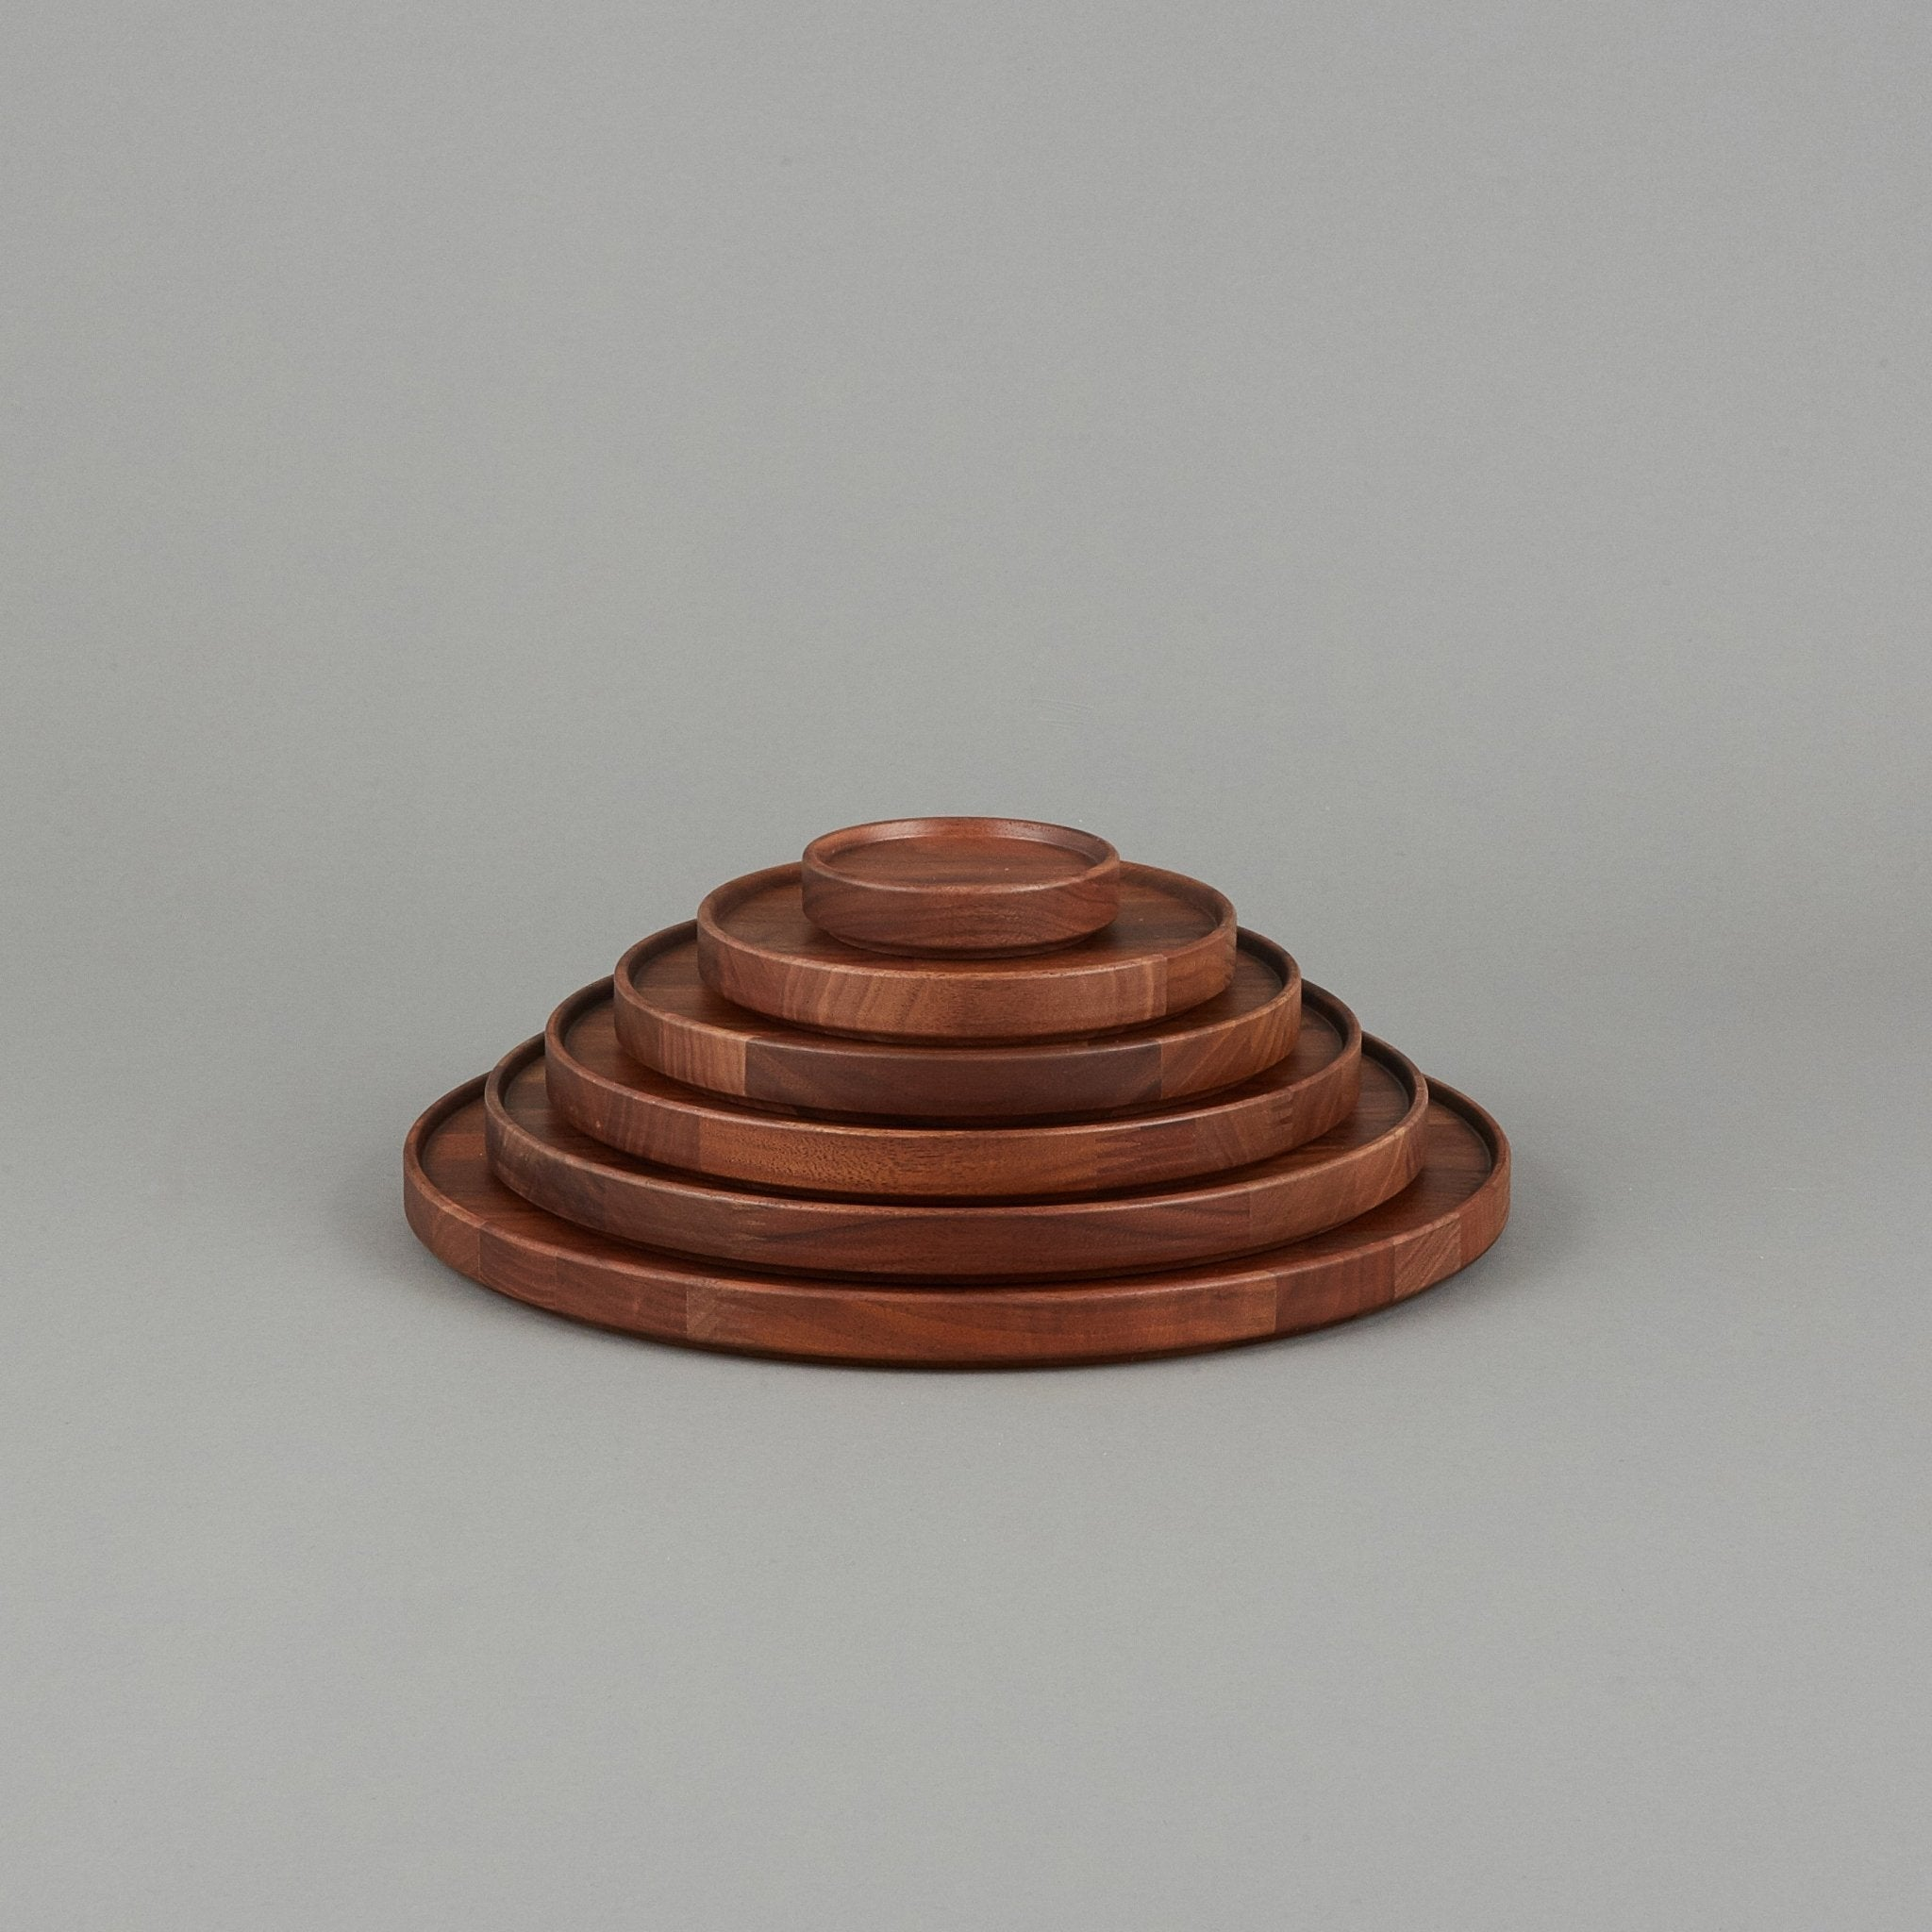 "HPWN022 - Tray / Lid Walnut ø 3.3/8"" - tortoise general store"